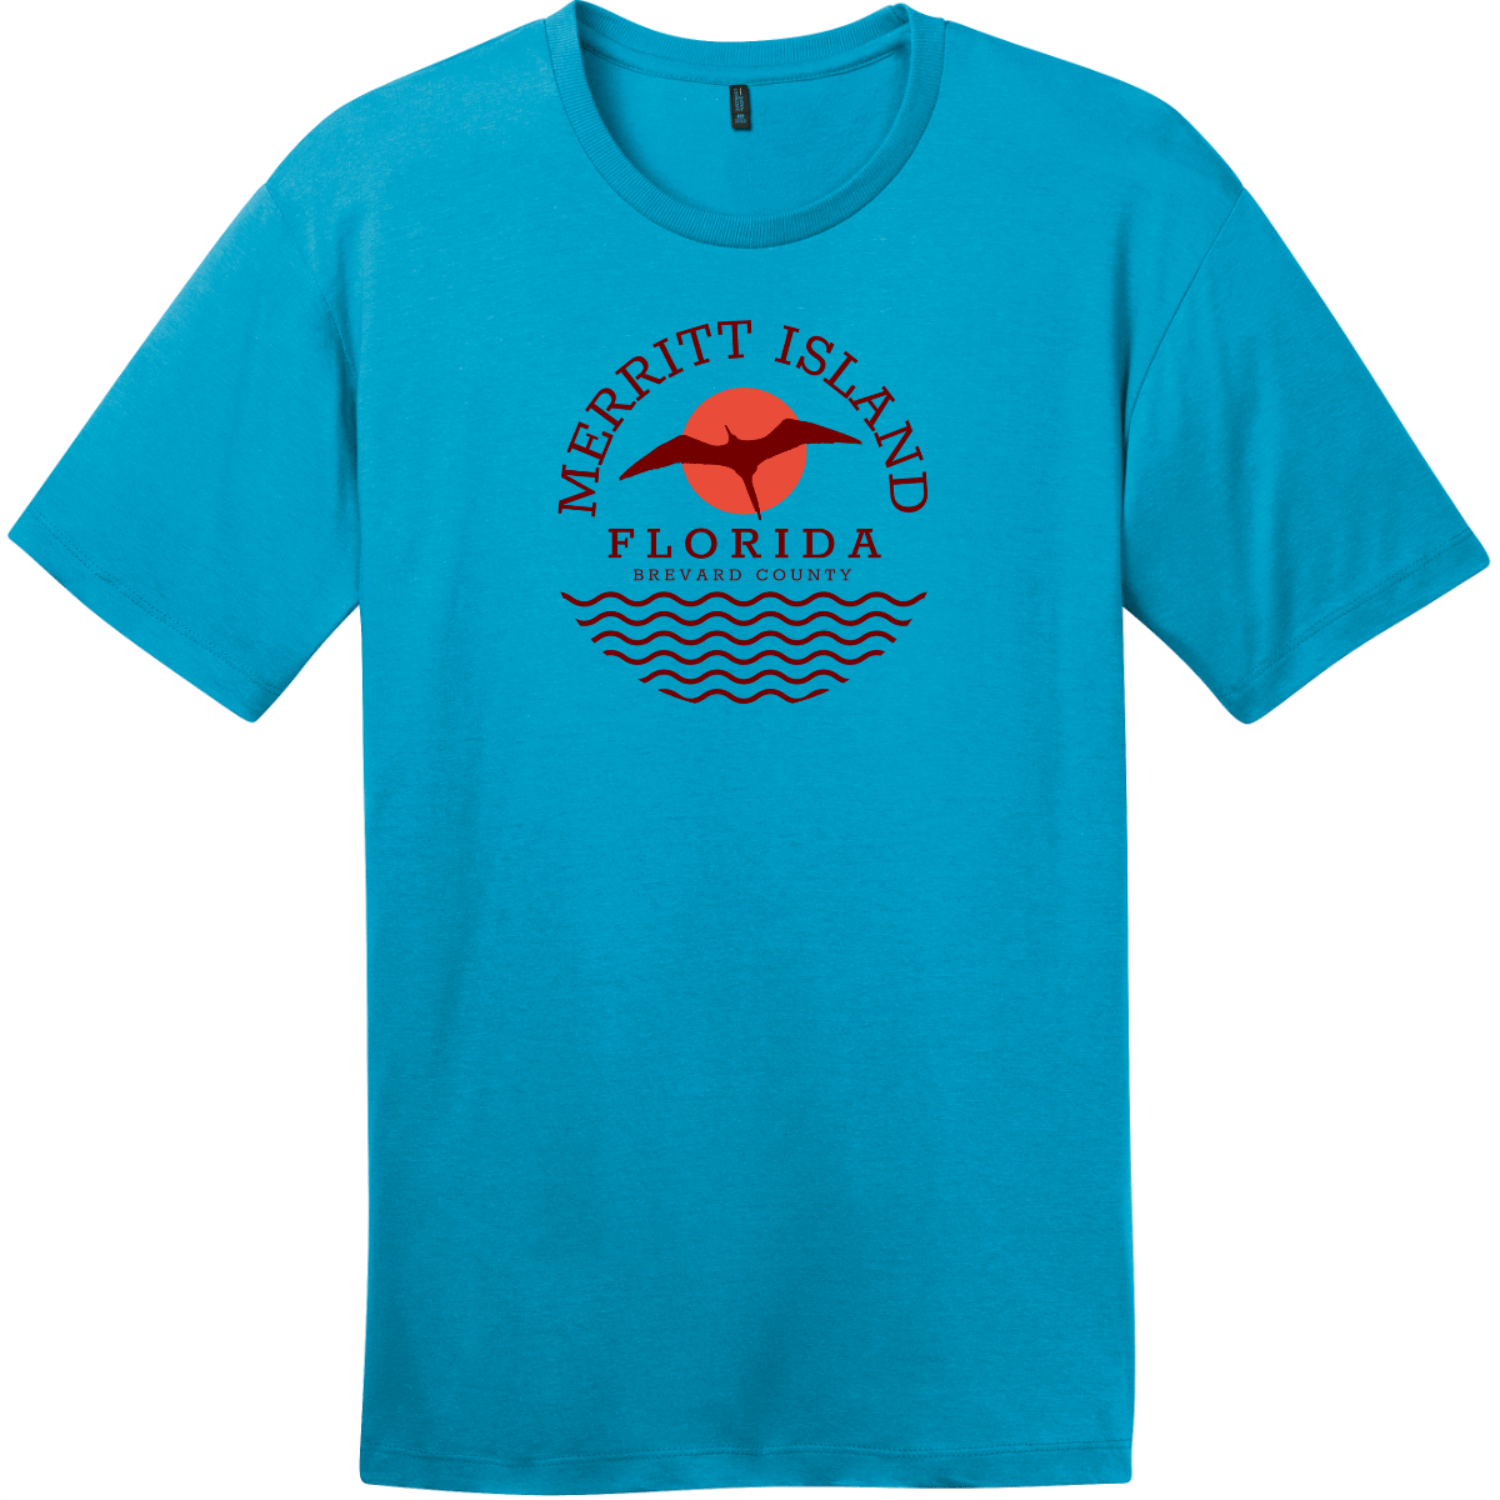 Merritt Island Florida T-Shirt Bright Turquoise District Perfect Weight Tee DT104